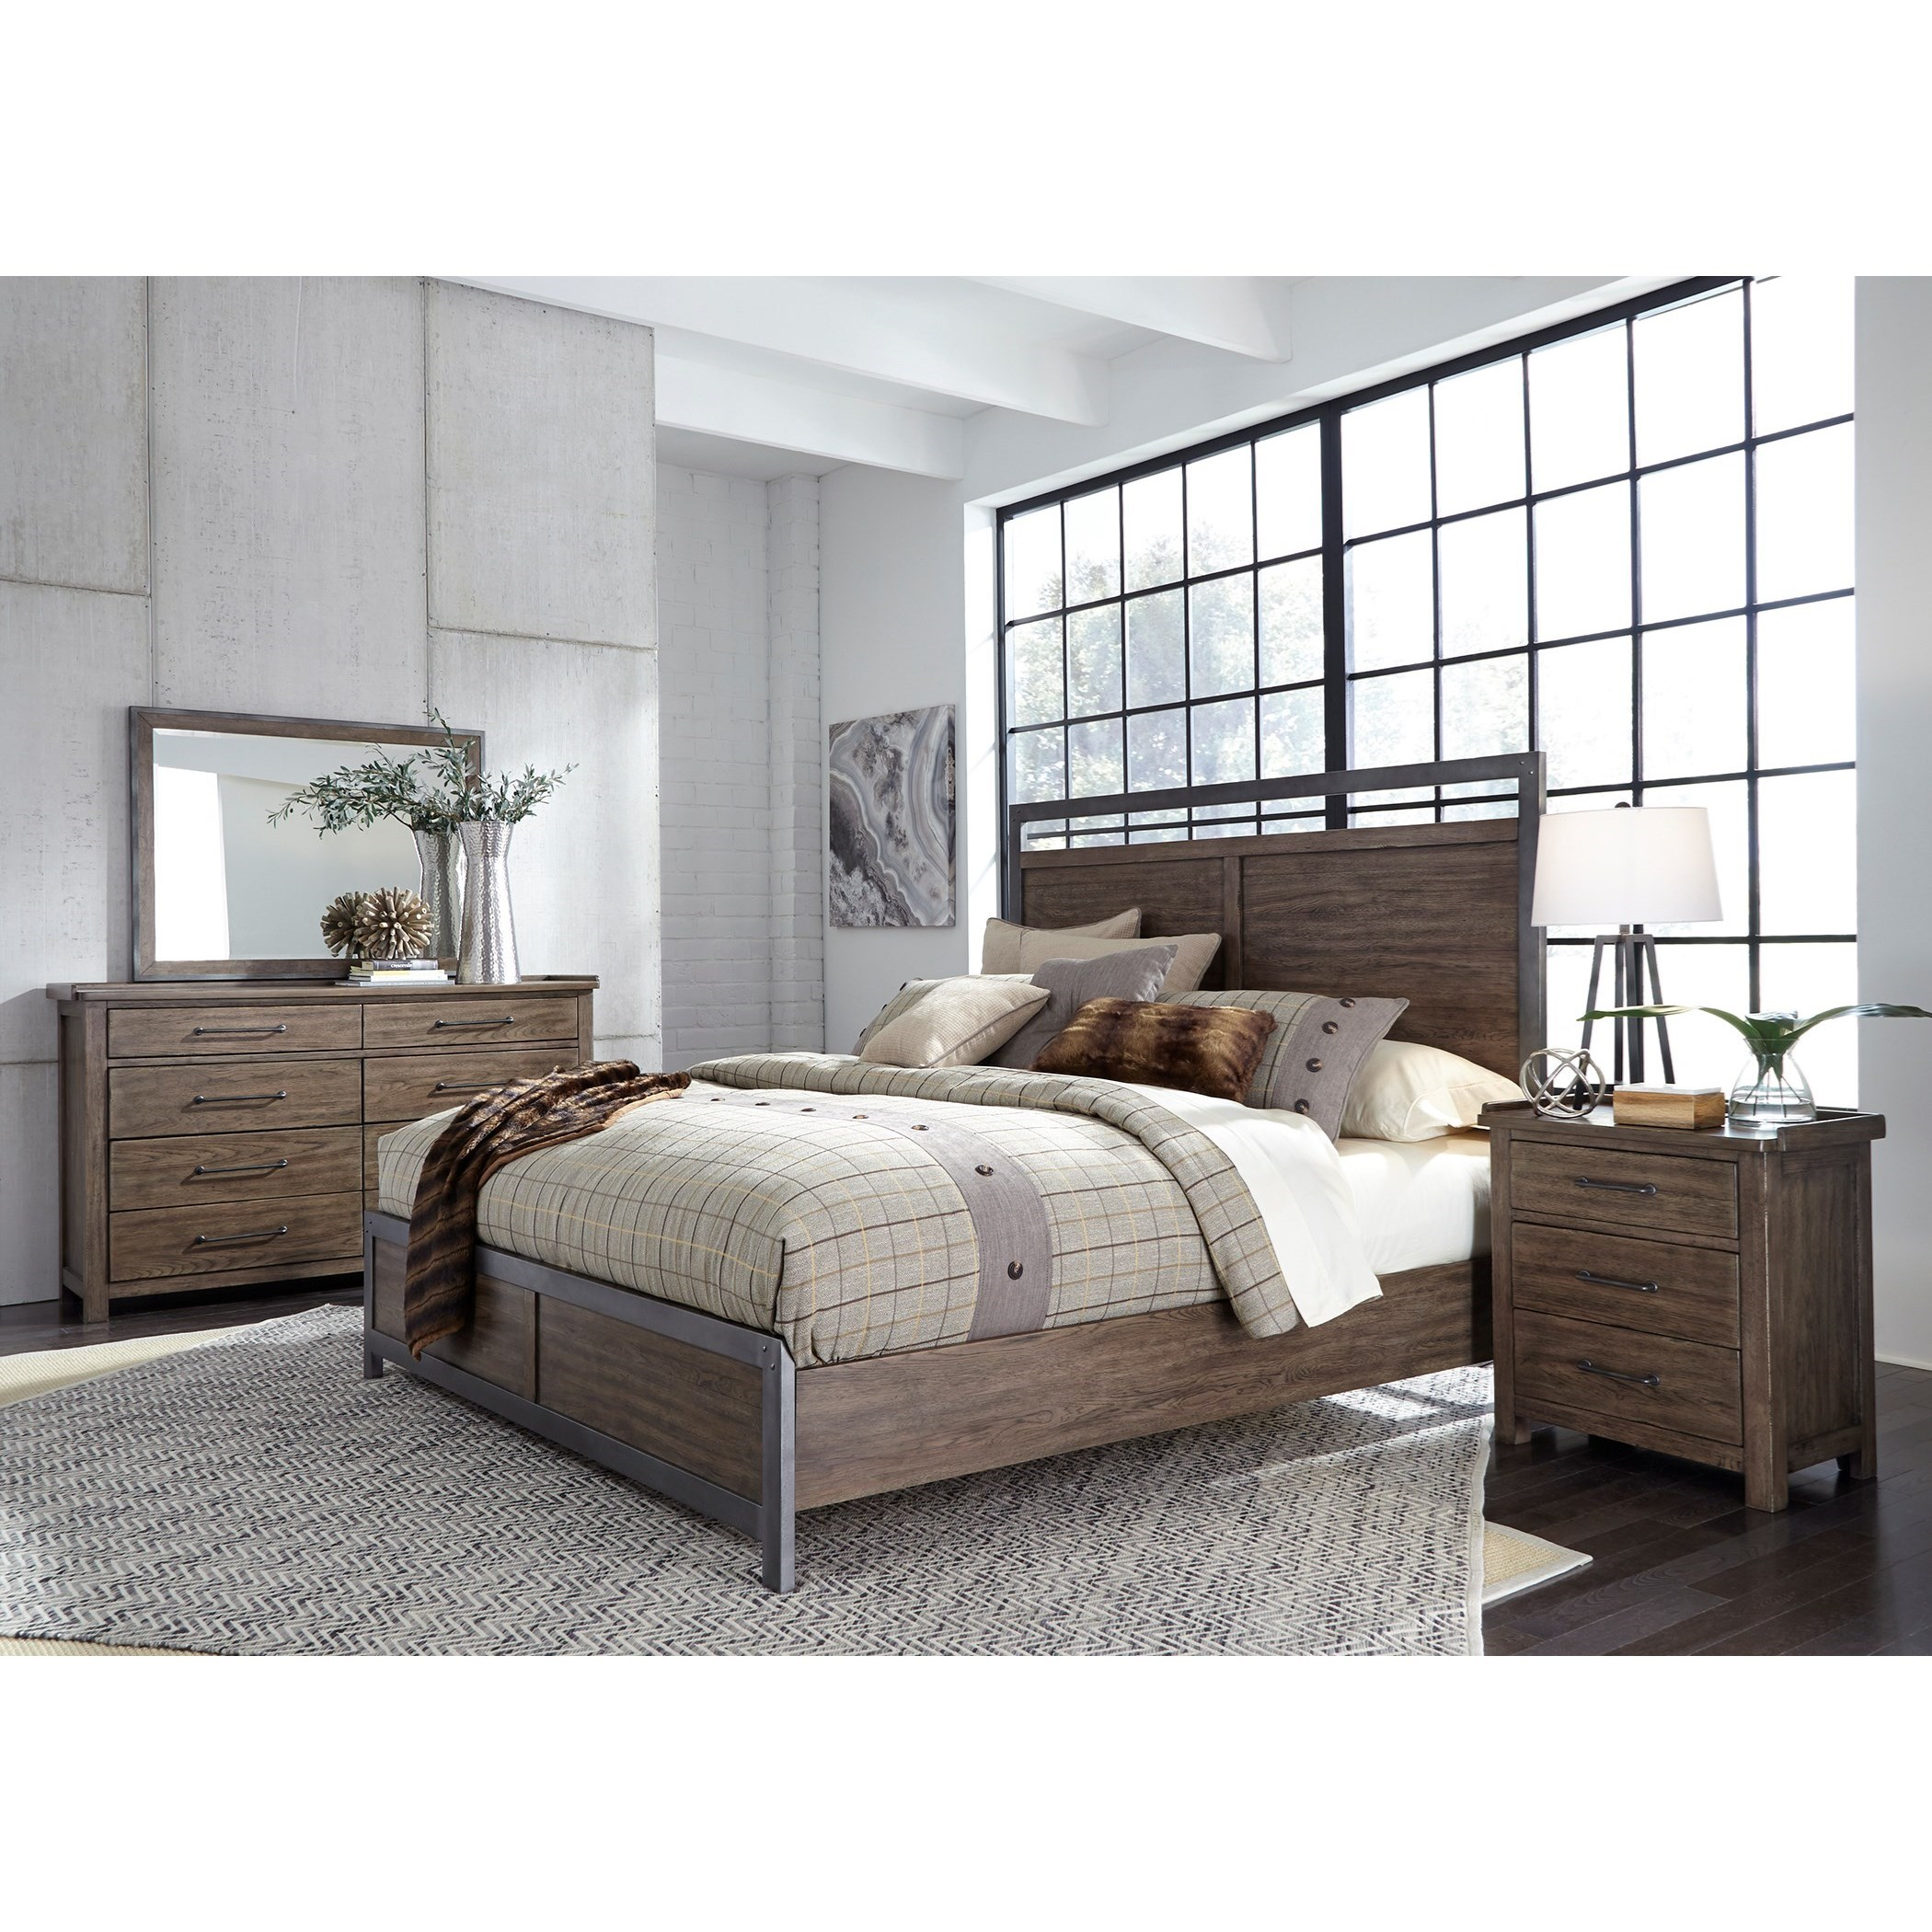 Sonoma Road Queen Bedroom Group by Liberty Furniture at Northeast Factory Direct